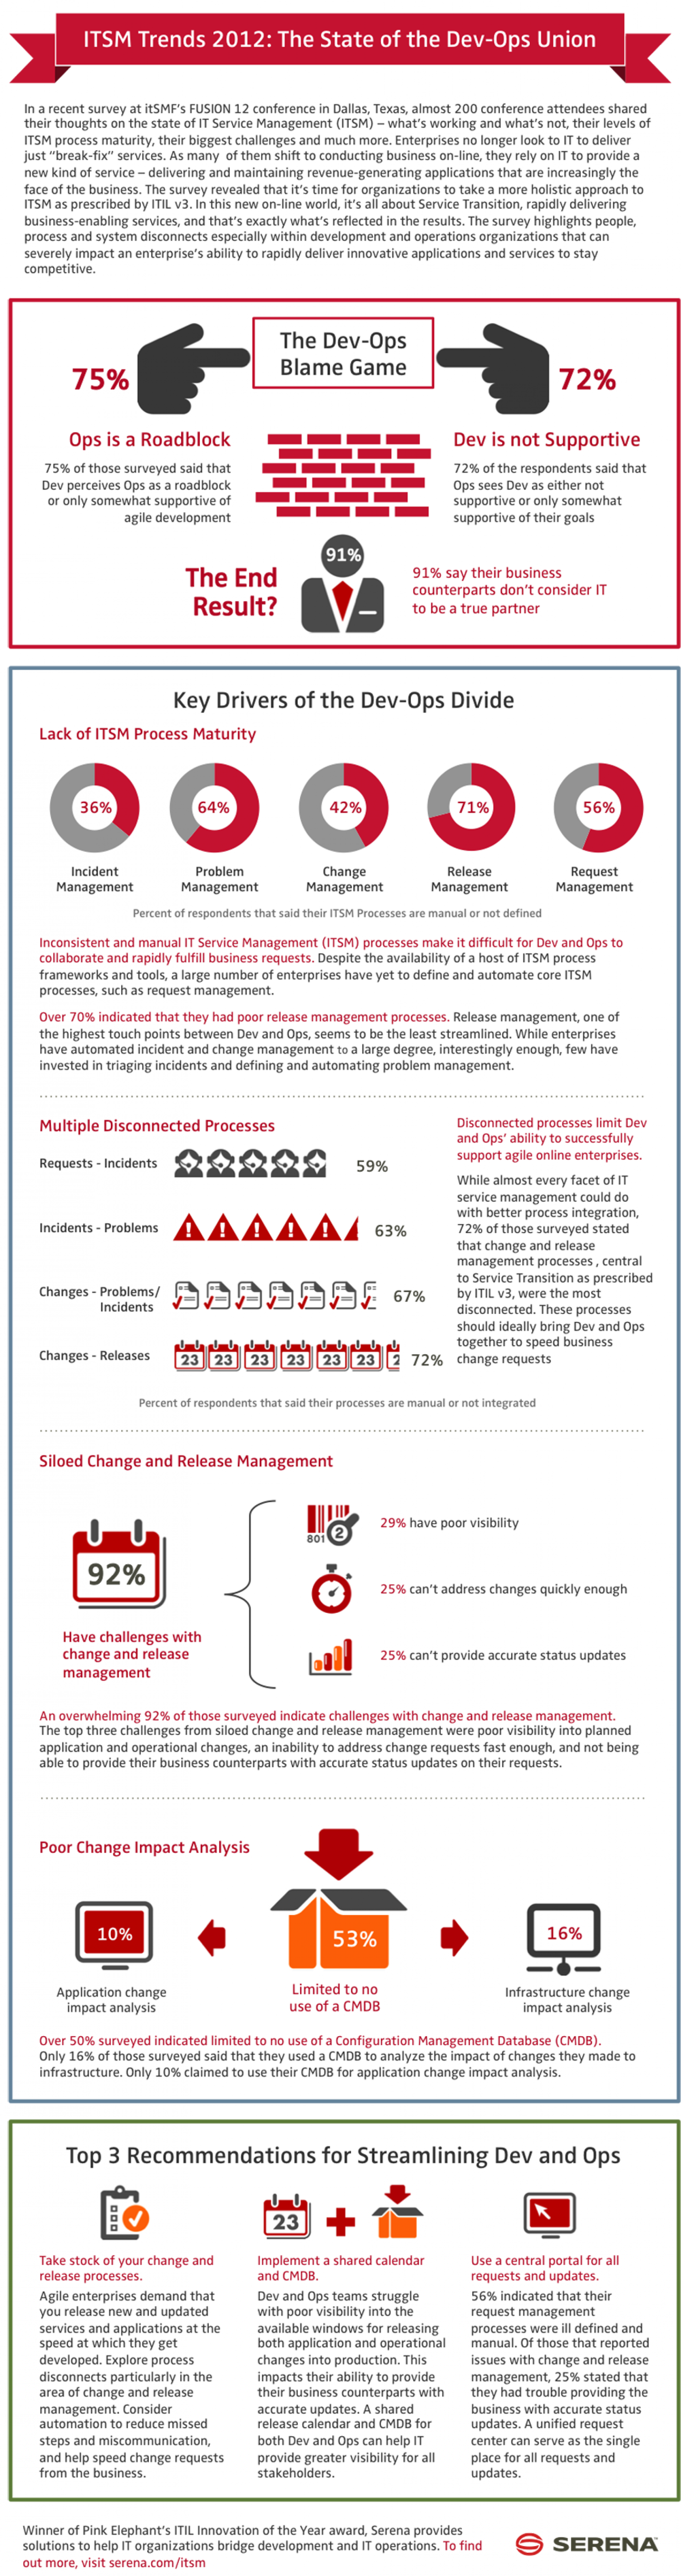 ITSM Trends Survey 2012: The State of the Dev-Ops Union Infographic